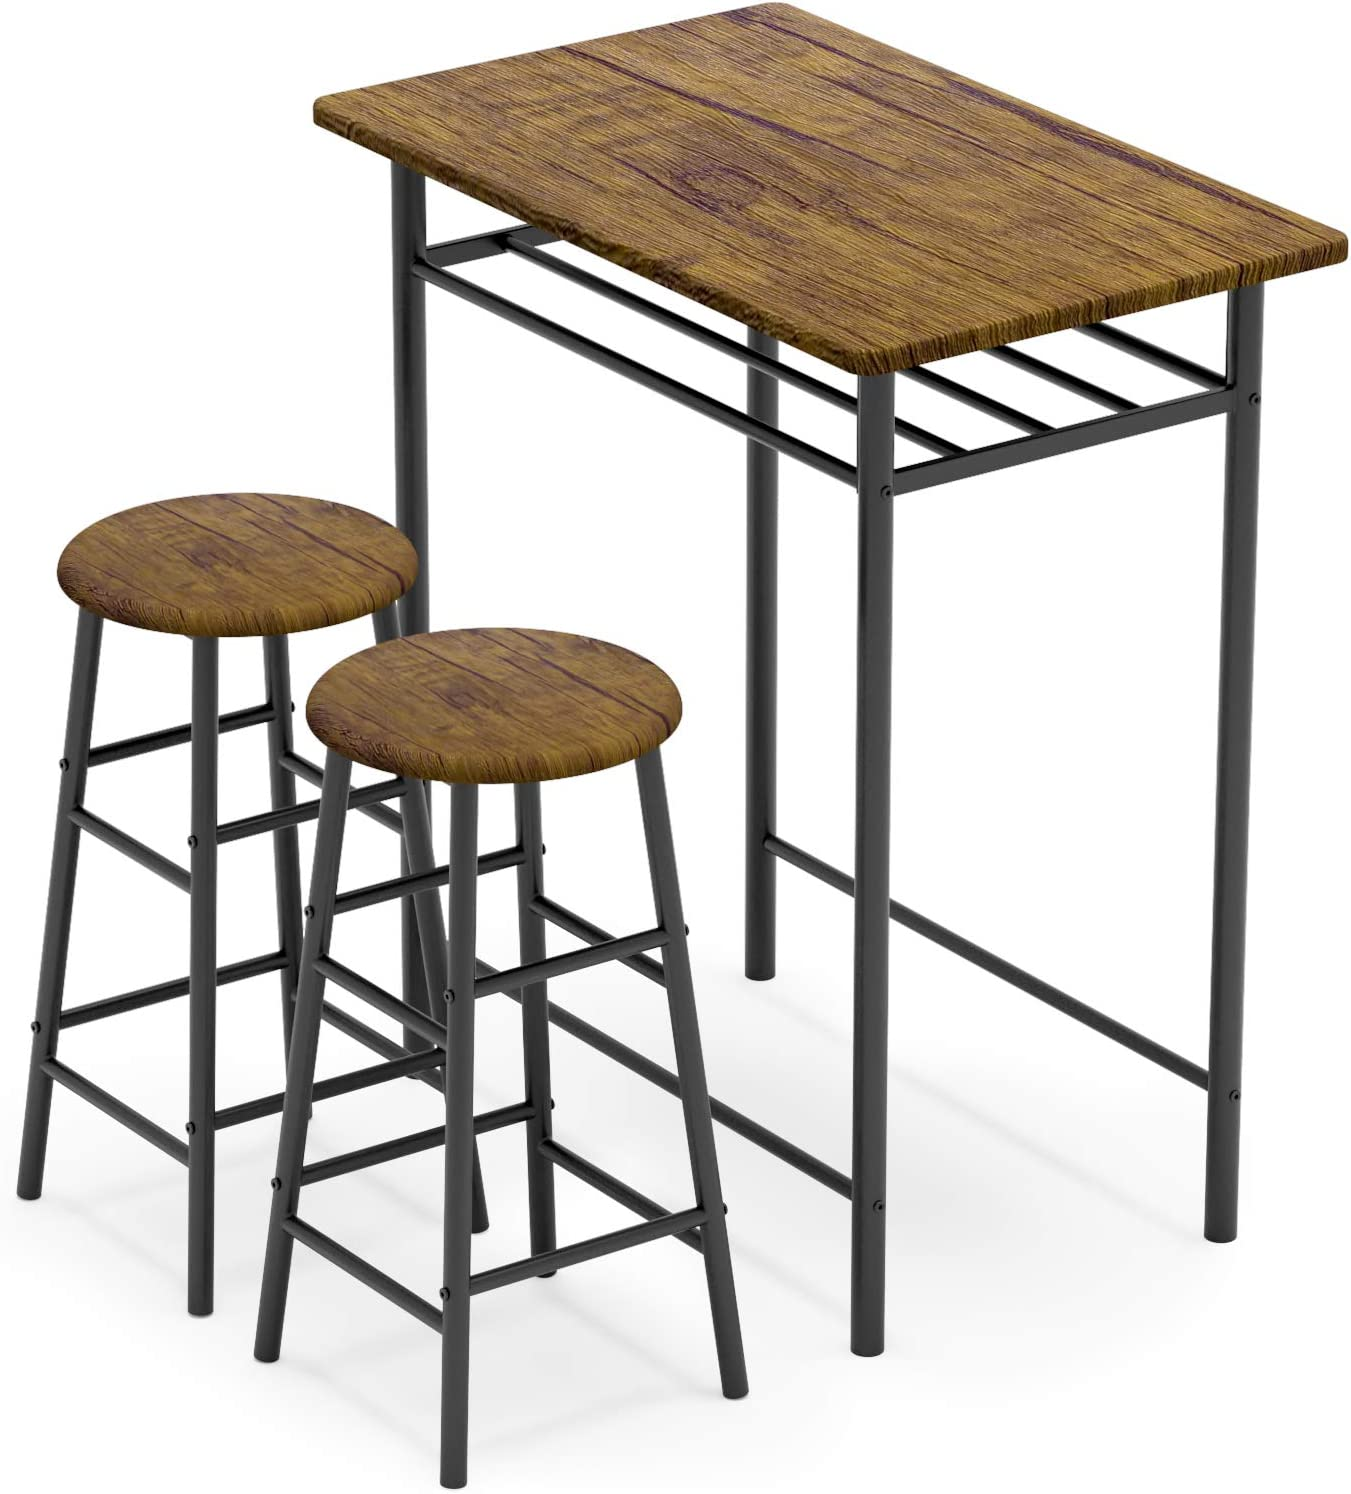 WeeHom 9 Pieces Bar Table Set, Modern Pub Table and Chairs Dining Set,  Kitchen Counter Height Dining Table Set with 9 Bar Stools, Built in Storage  ...